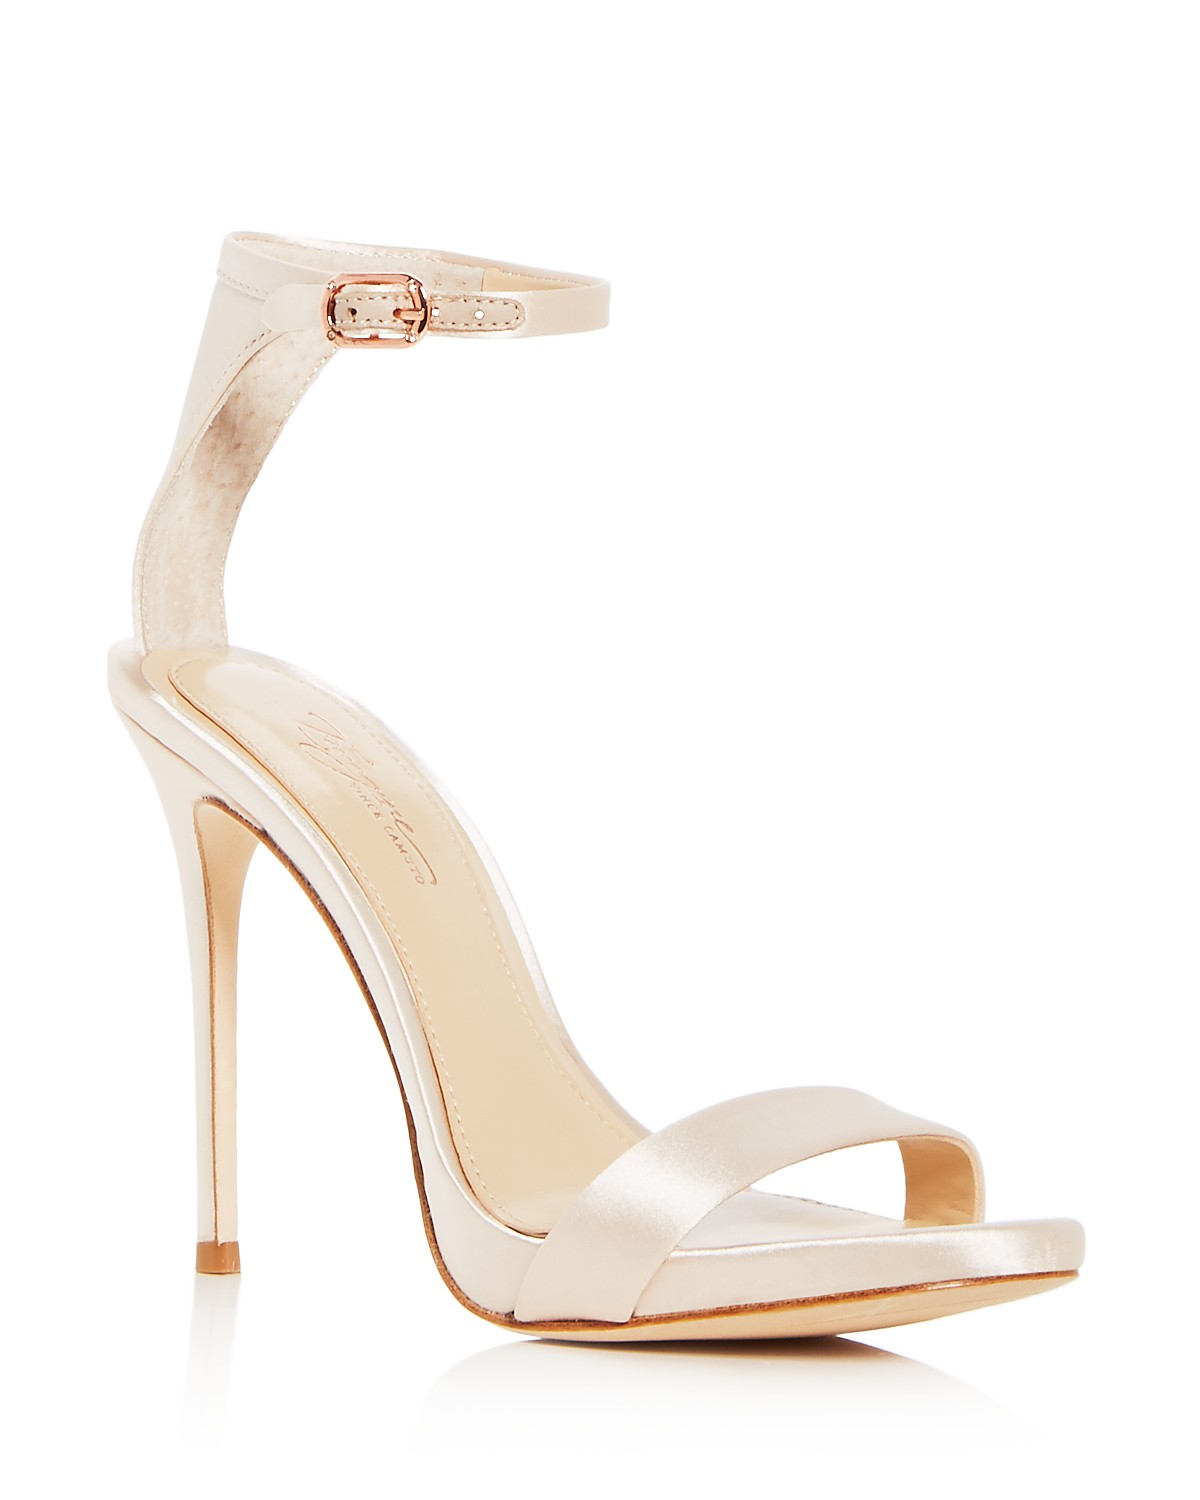 Vince Camuto Dacia Leather Ankle Strap High-Heel Sandals YDrbs